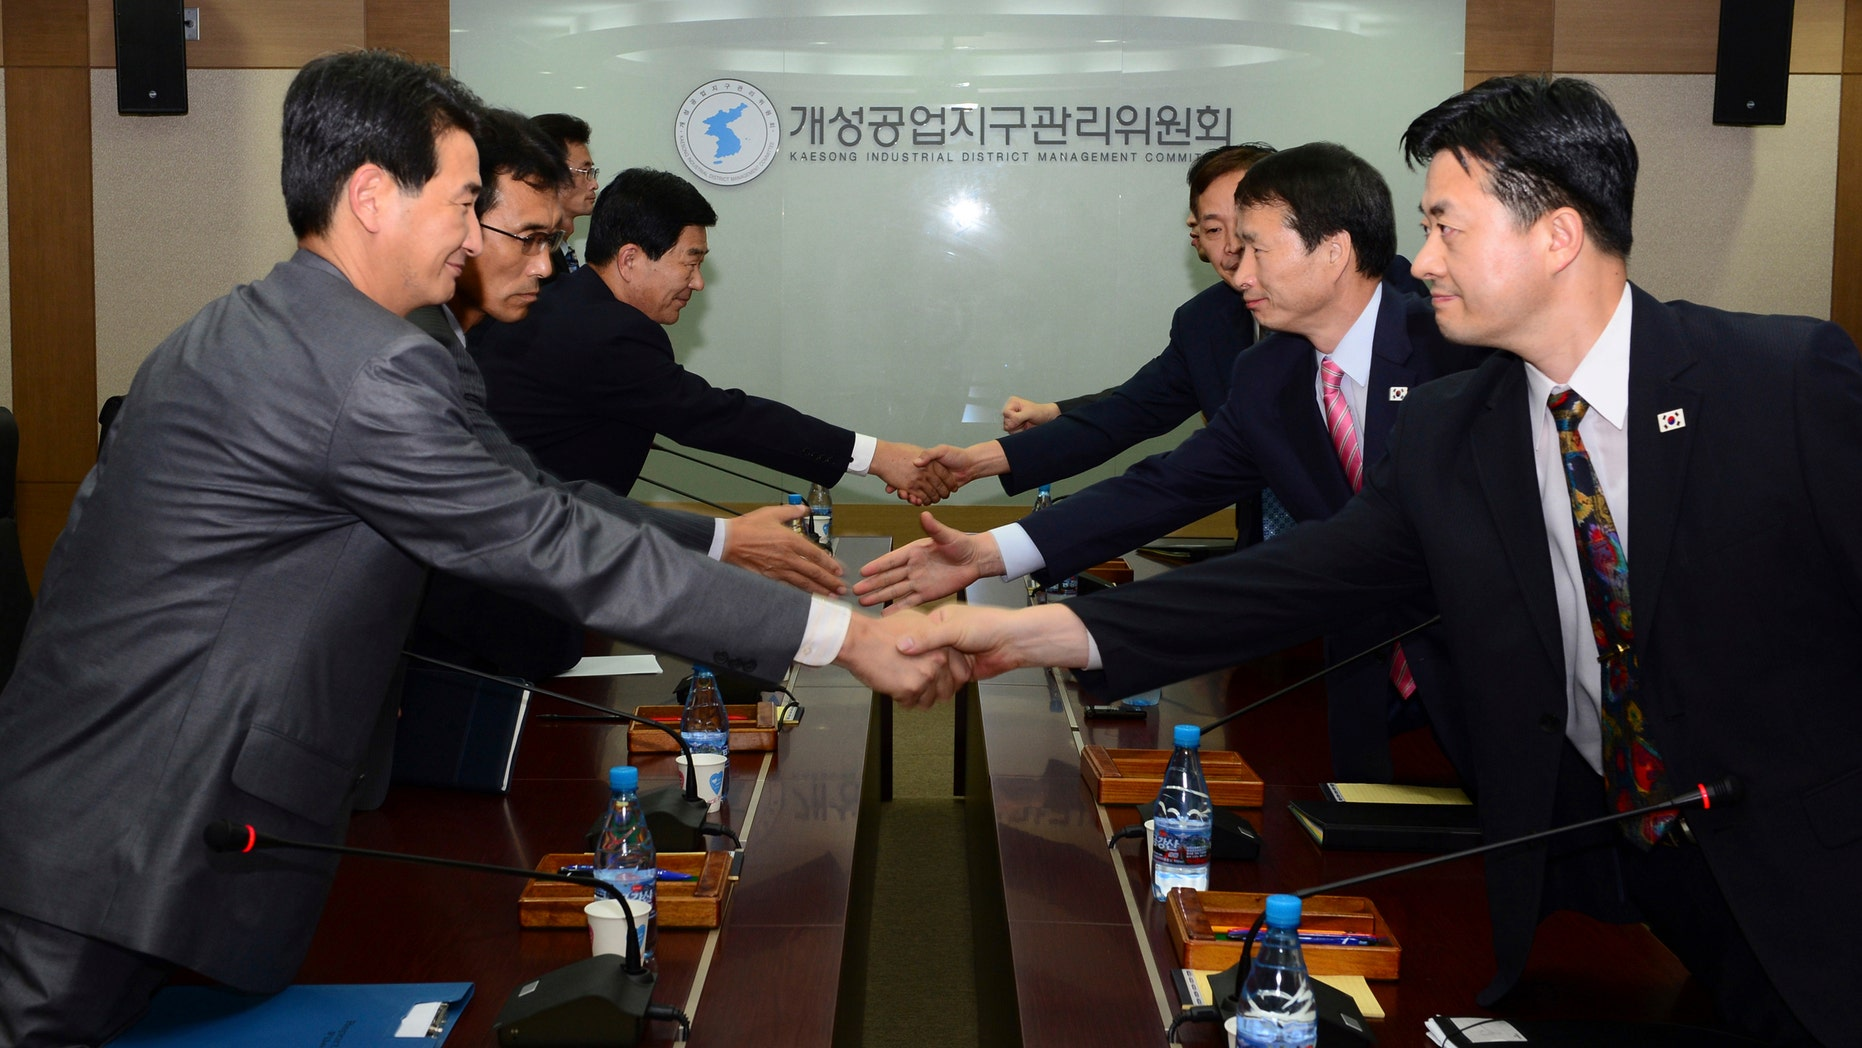 In this photo released by Unification Ministry, South Korean delegates, right, shake hands with their North Korean counterparts at the start of a meeting at Kaesong Industrial District Management Committee in Kaesong, North Korea, Wednesday, Sept. 11, 2013.